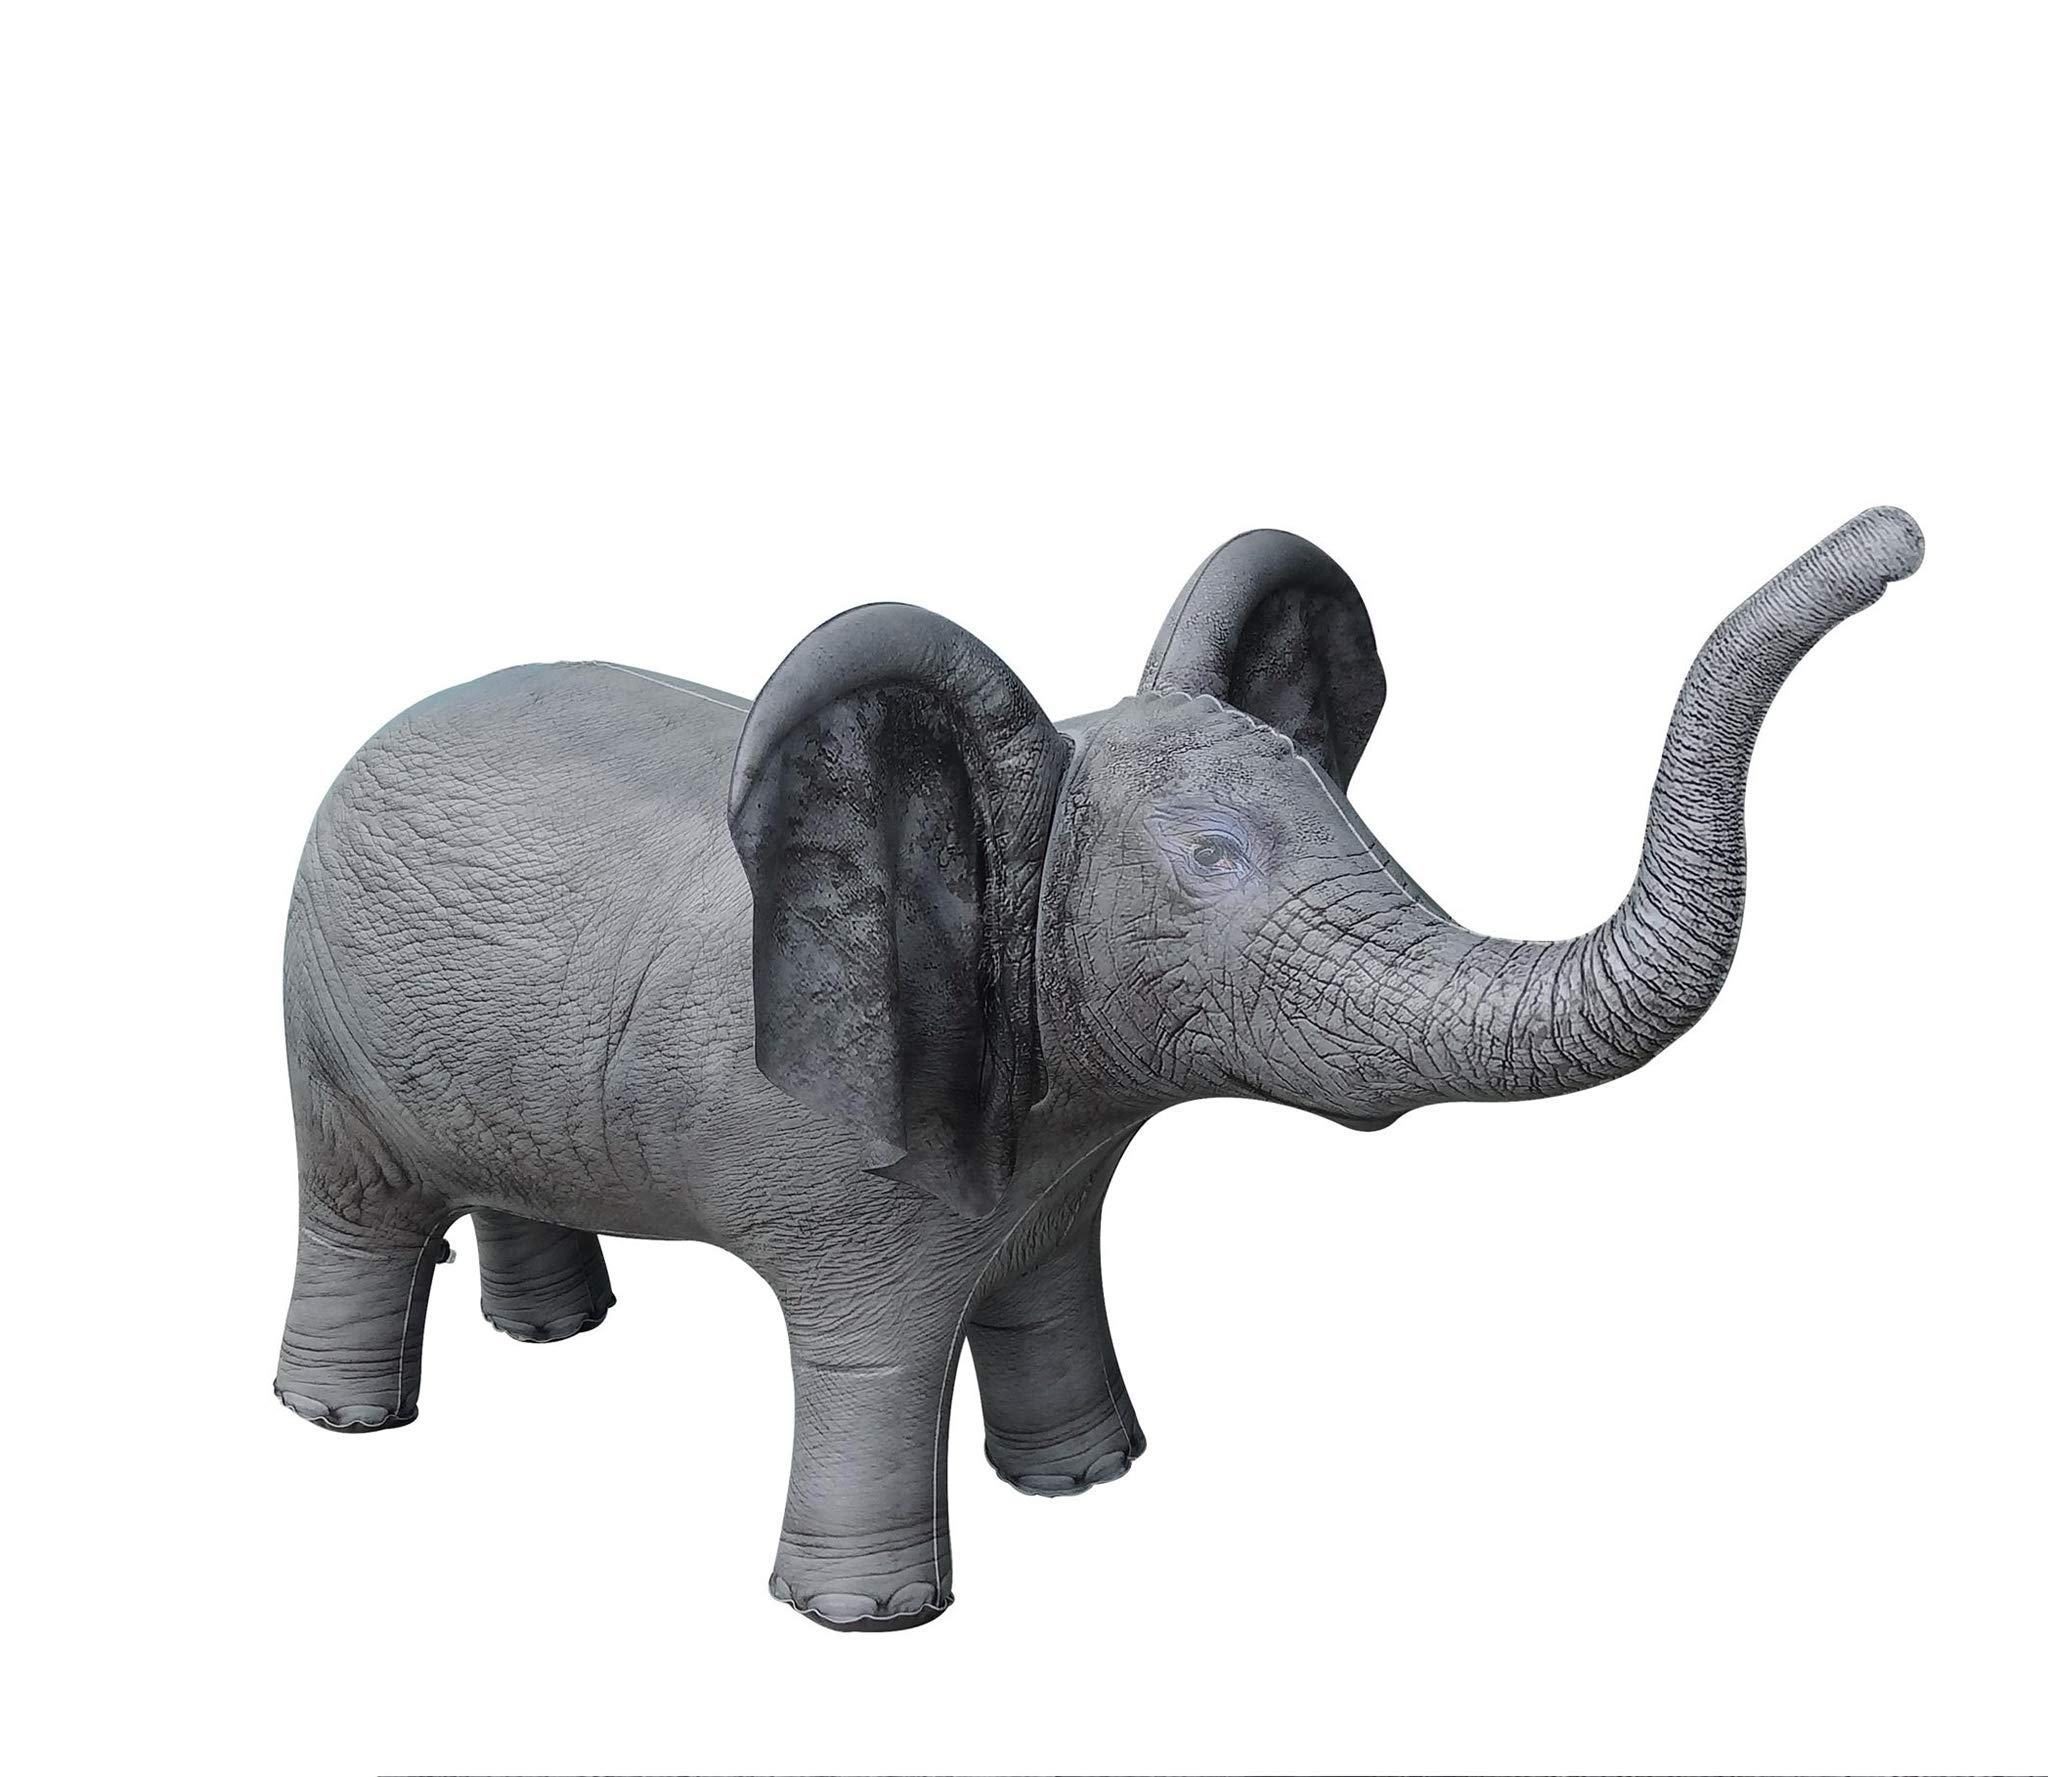 Jet Creations Inflatable Baby Elephant 36 inch Pool Party Decoration Birthday Kids and Adult Stuffed Animals an-ELE8 by Jet Creations